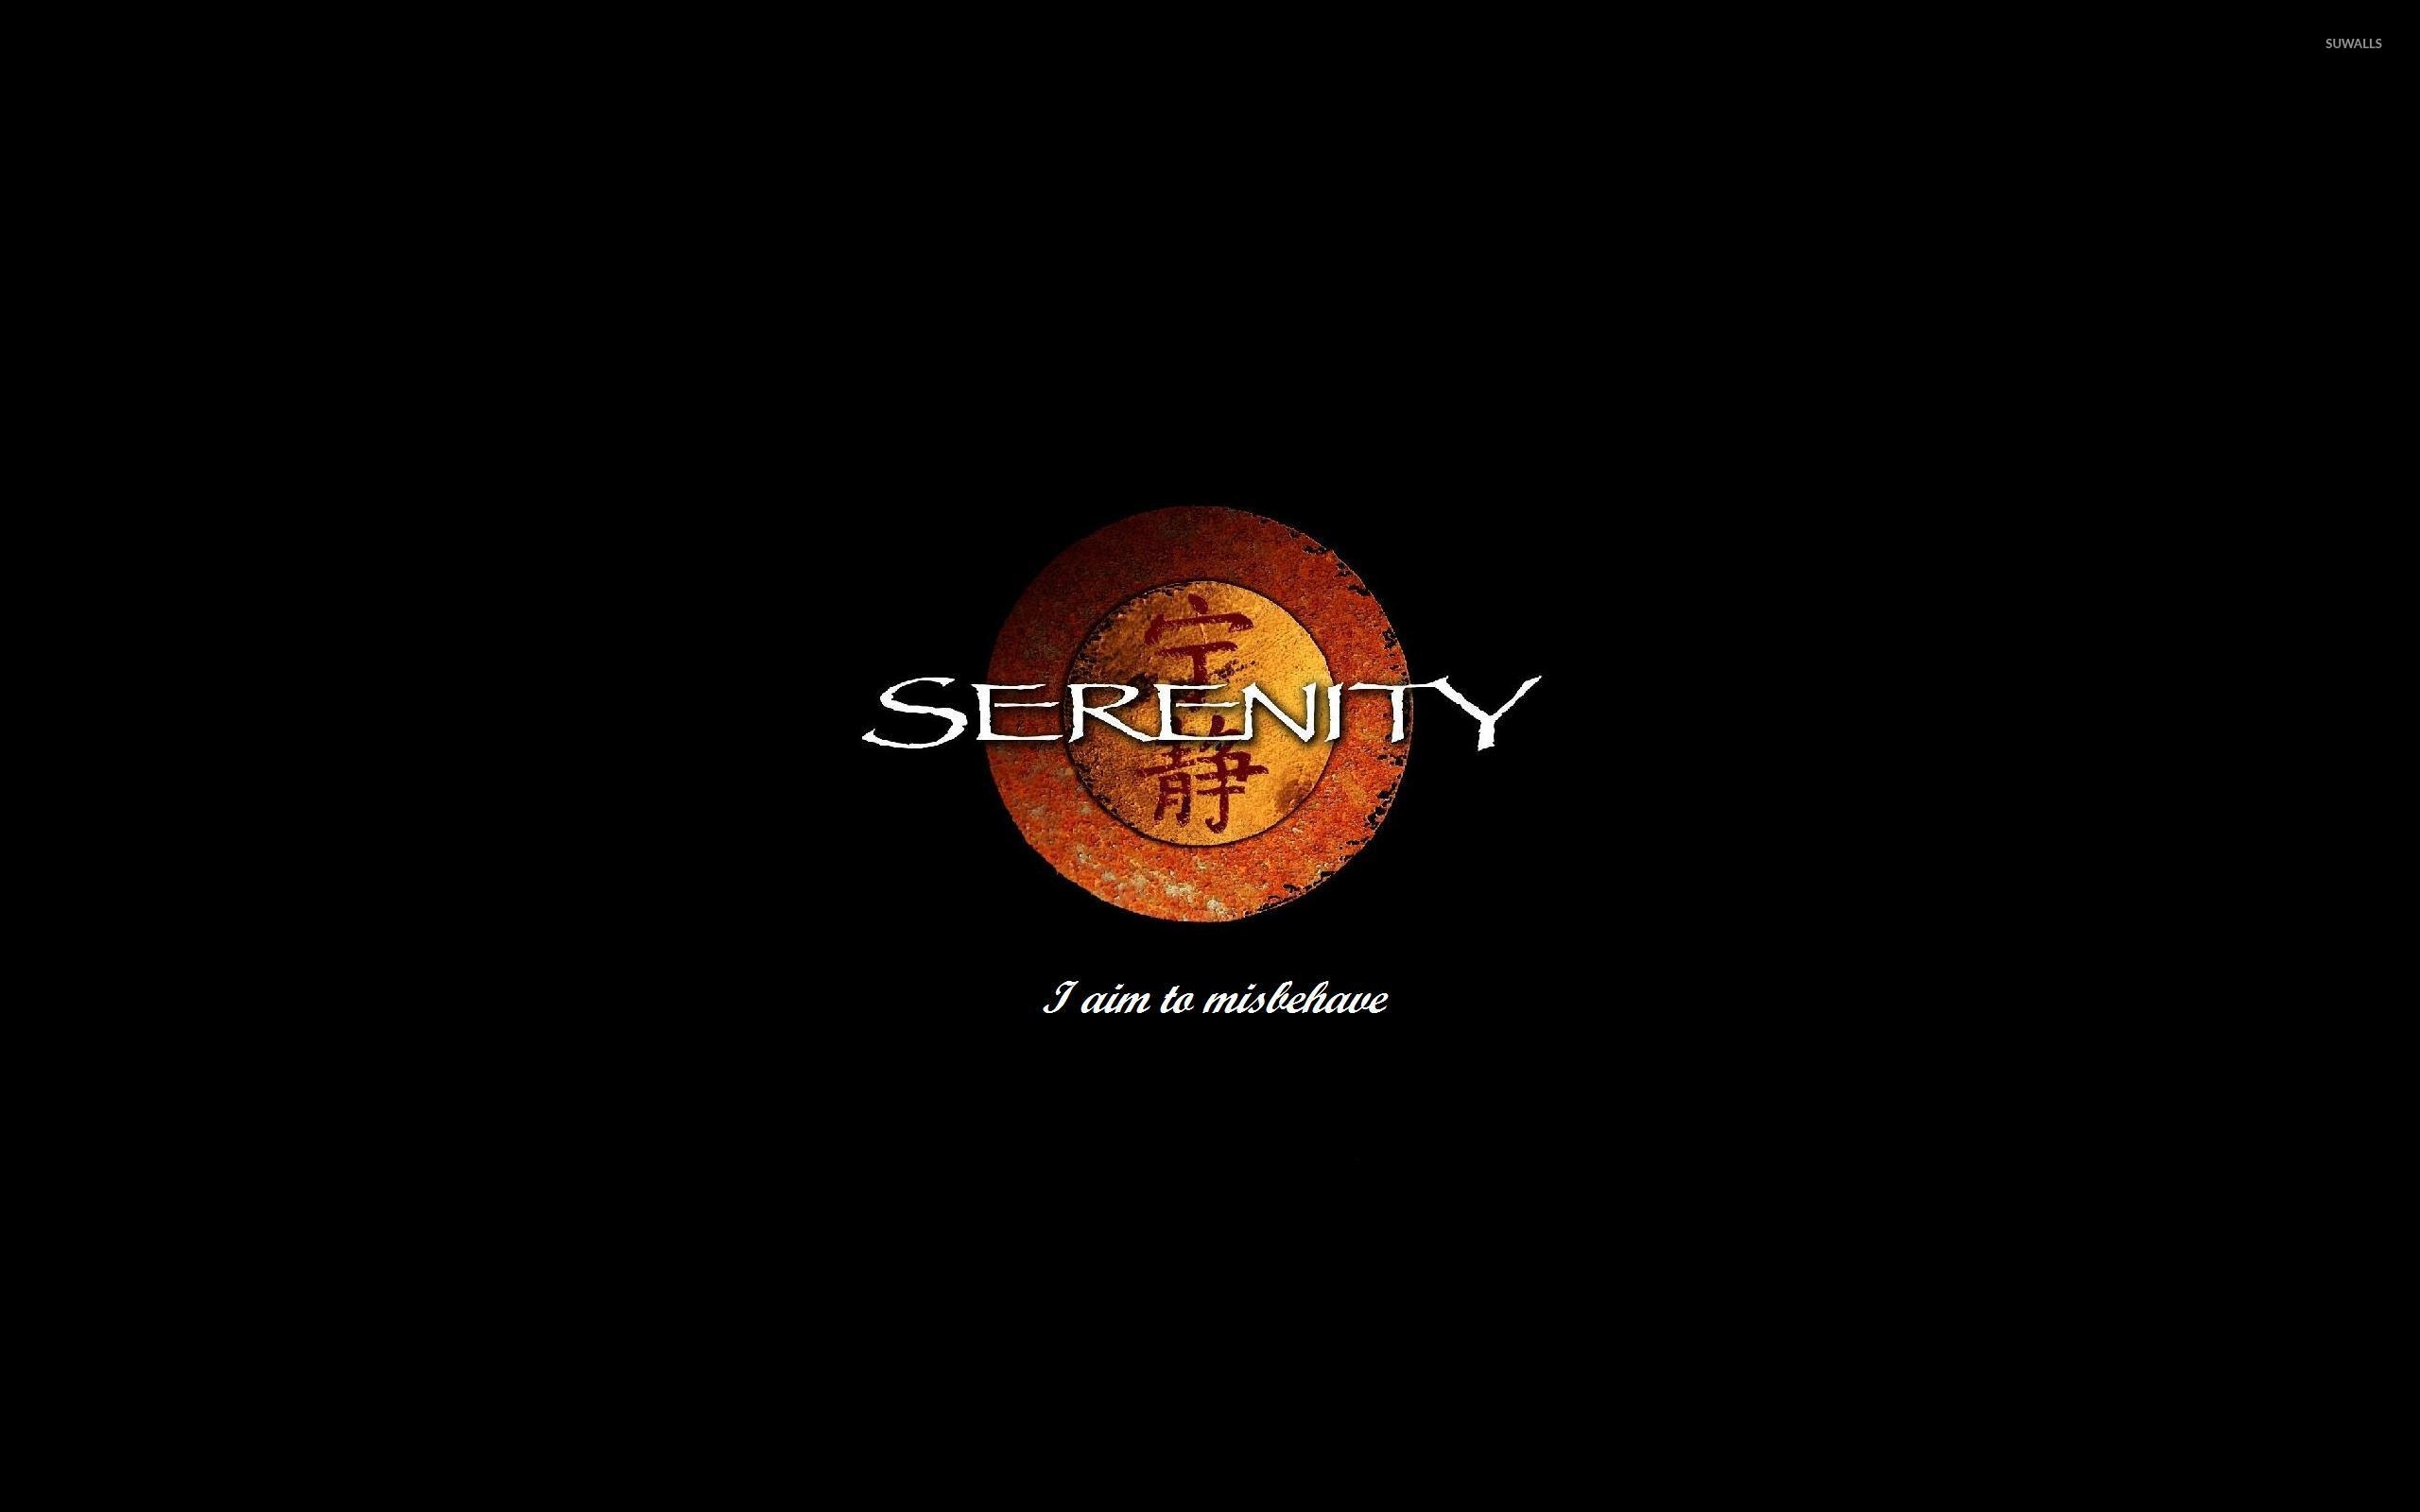 Serenity Firefly Wallpaper Tv Show Wallpapers 44956 HD Wallpapers Download Free Images Wallpaper [1000image.com]